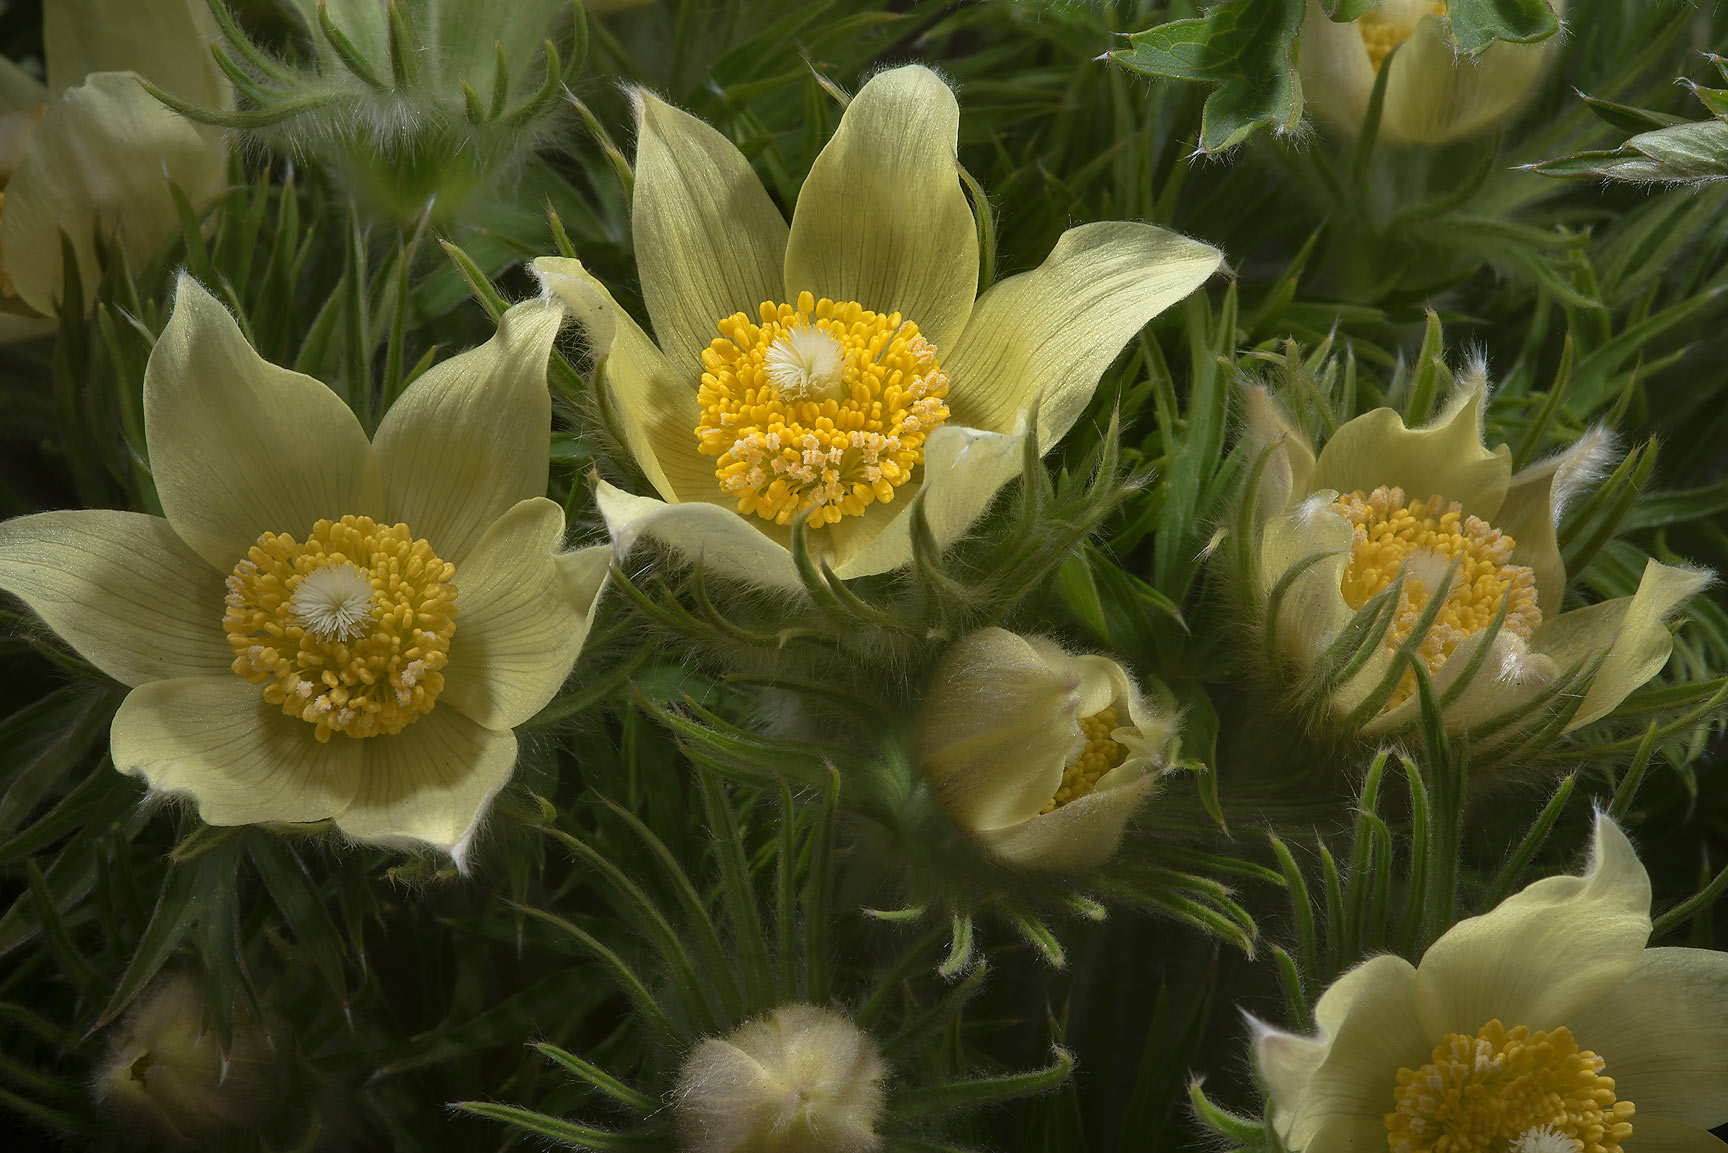 Blooming yellow eastern pasque flower (Pulsatilla...Institute. St.Petersburg, Russia